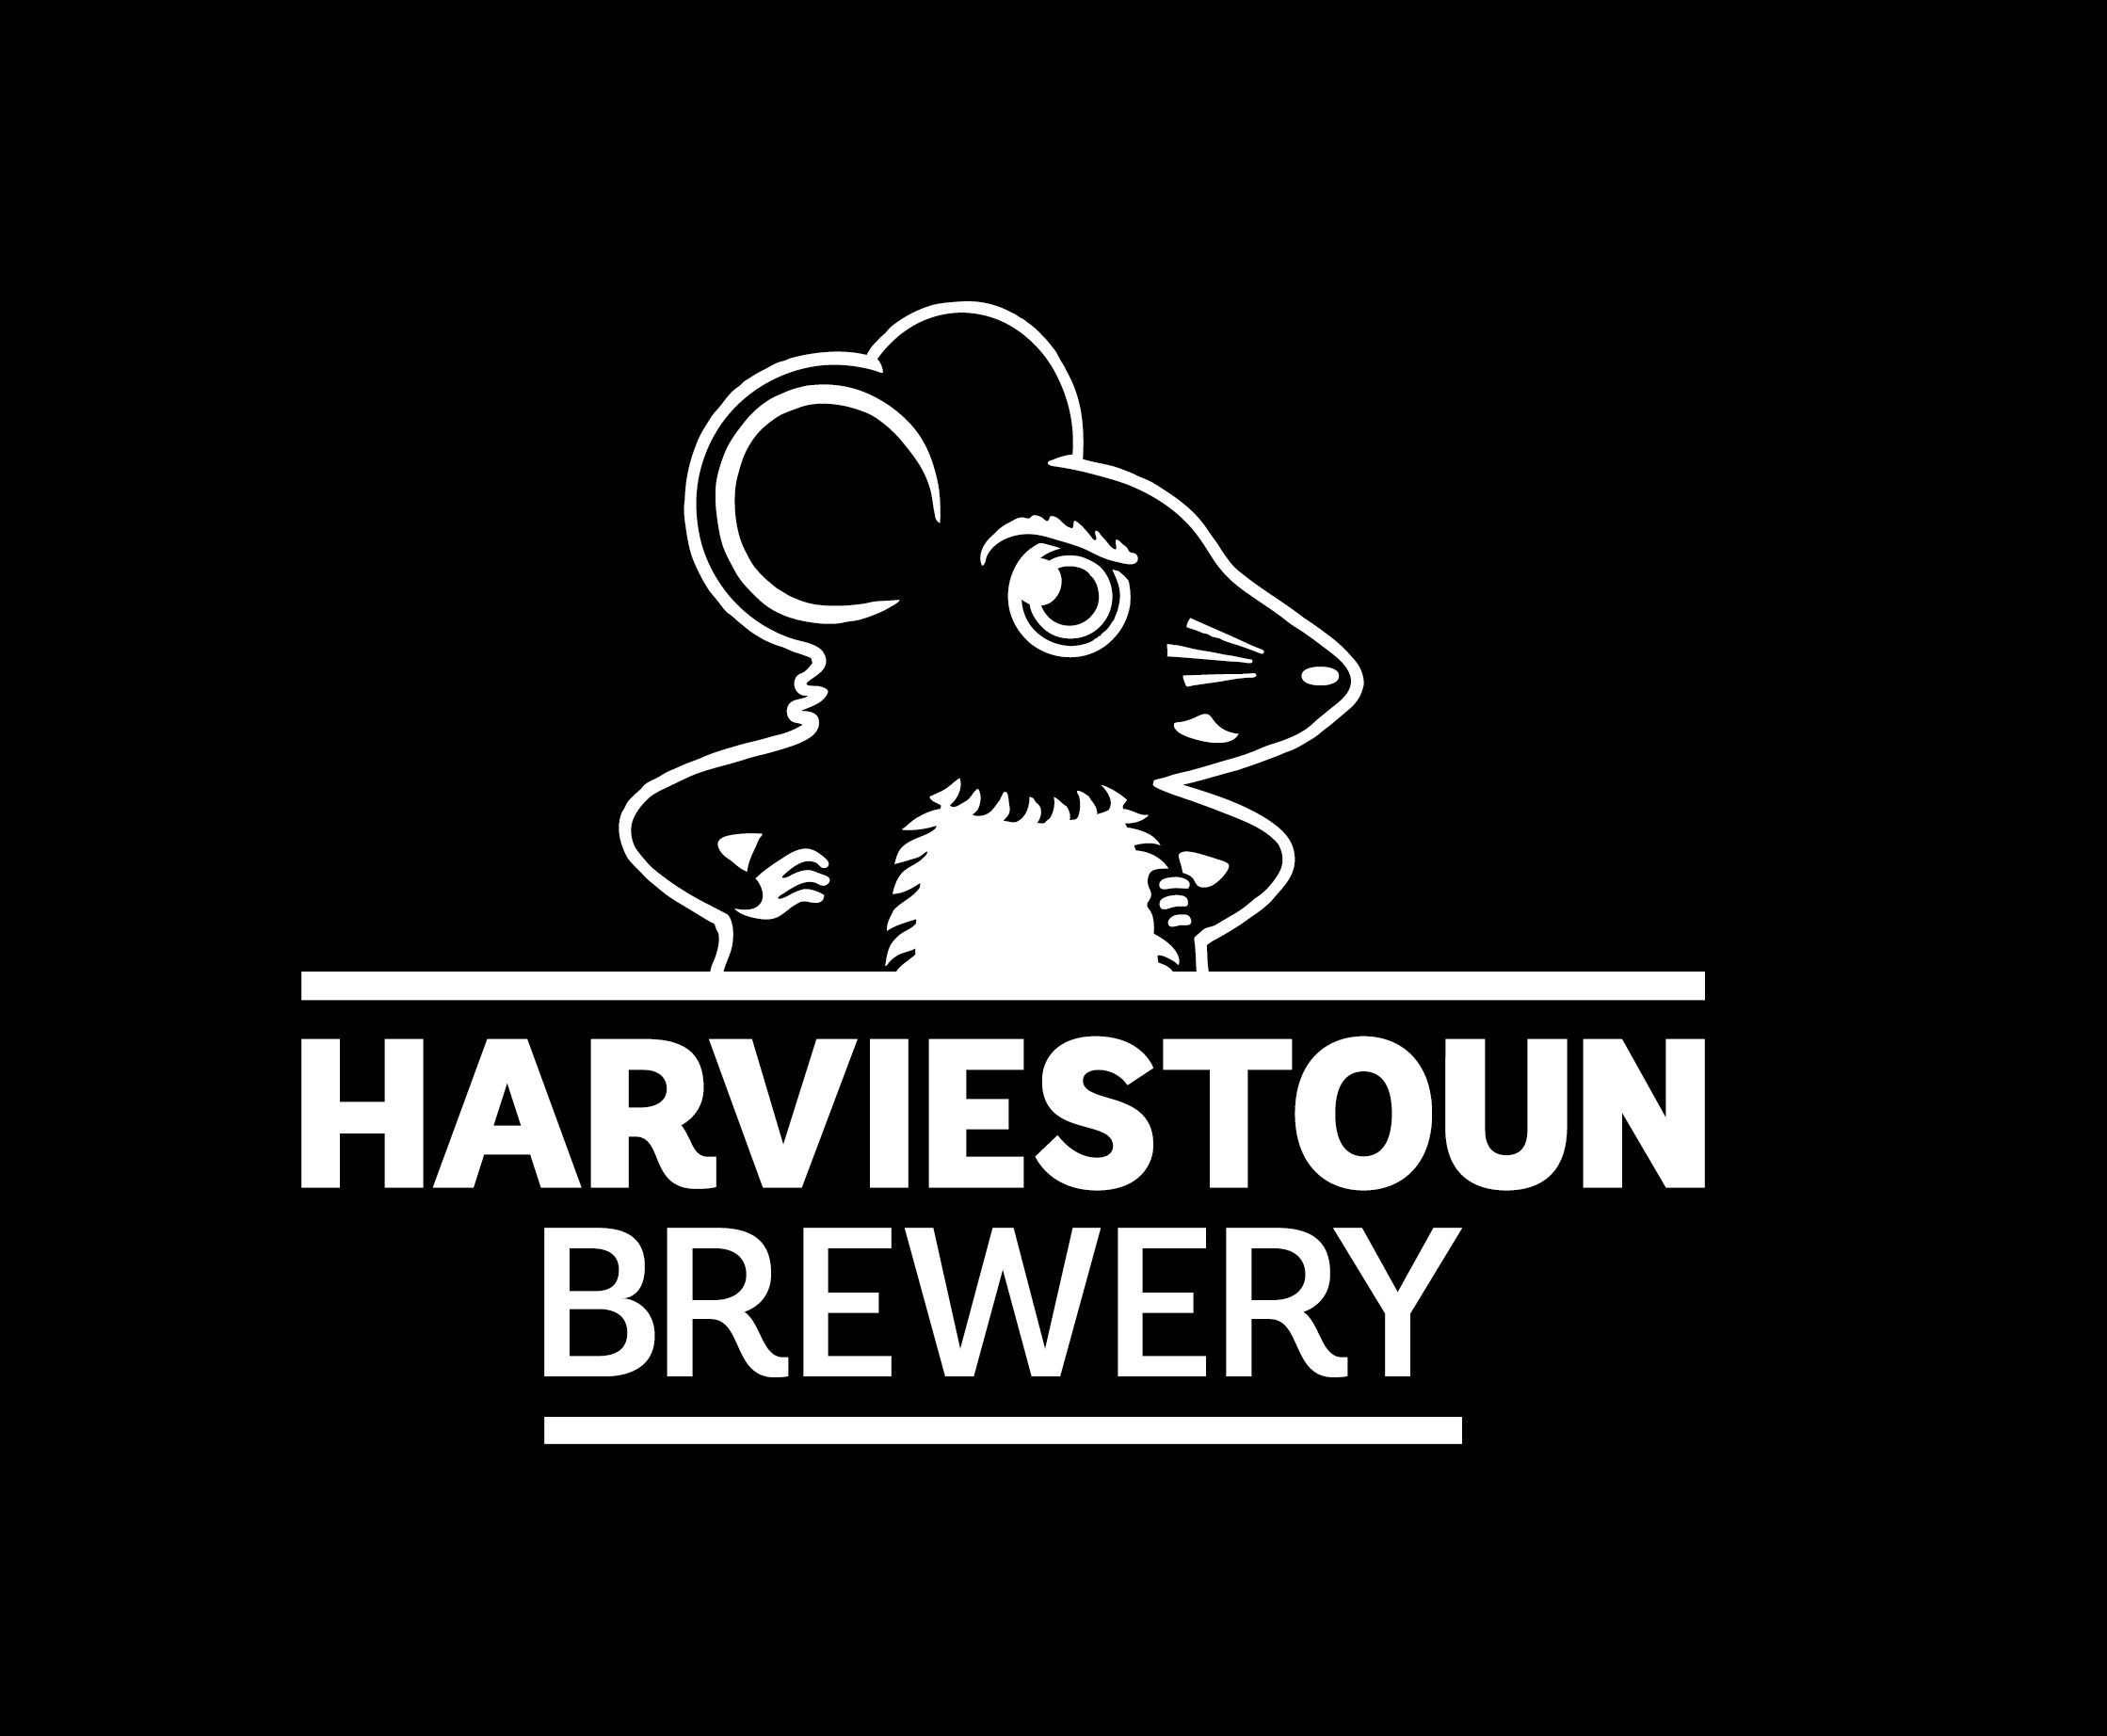 Harviestoun logo